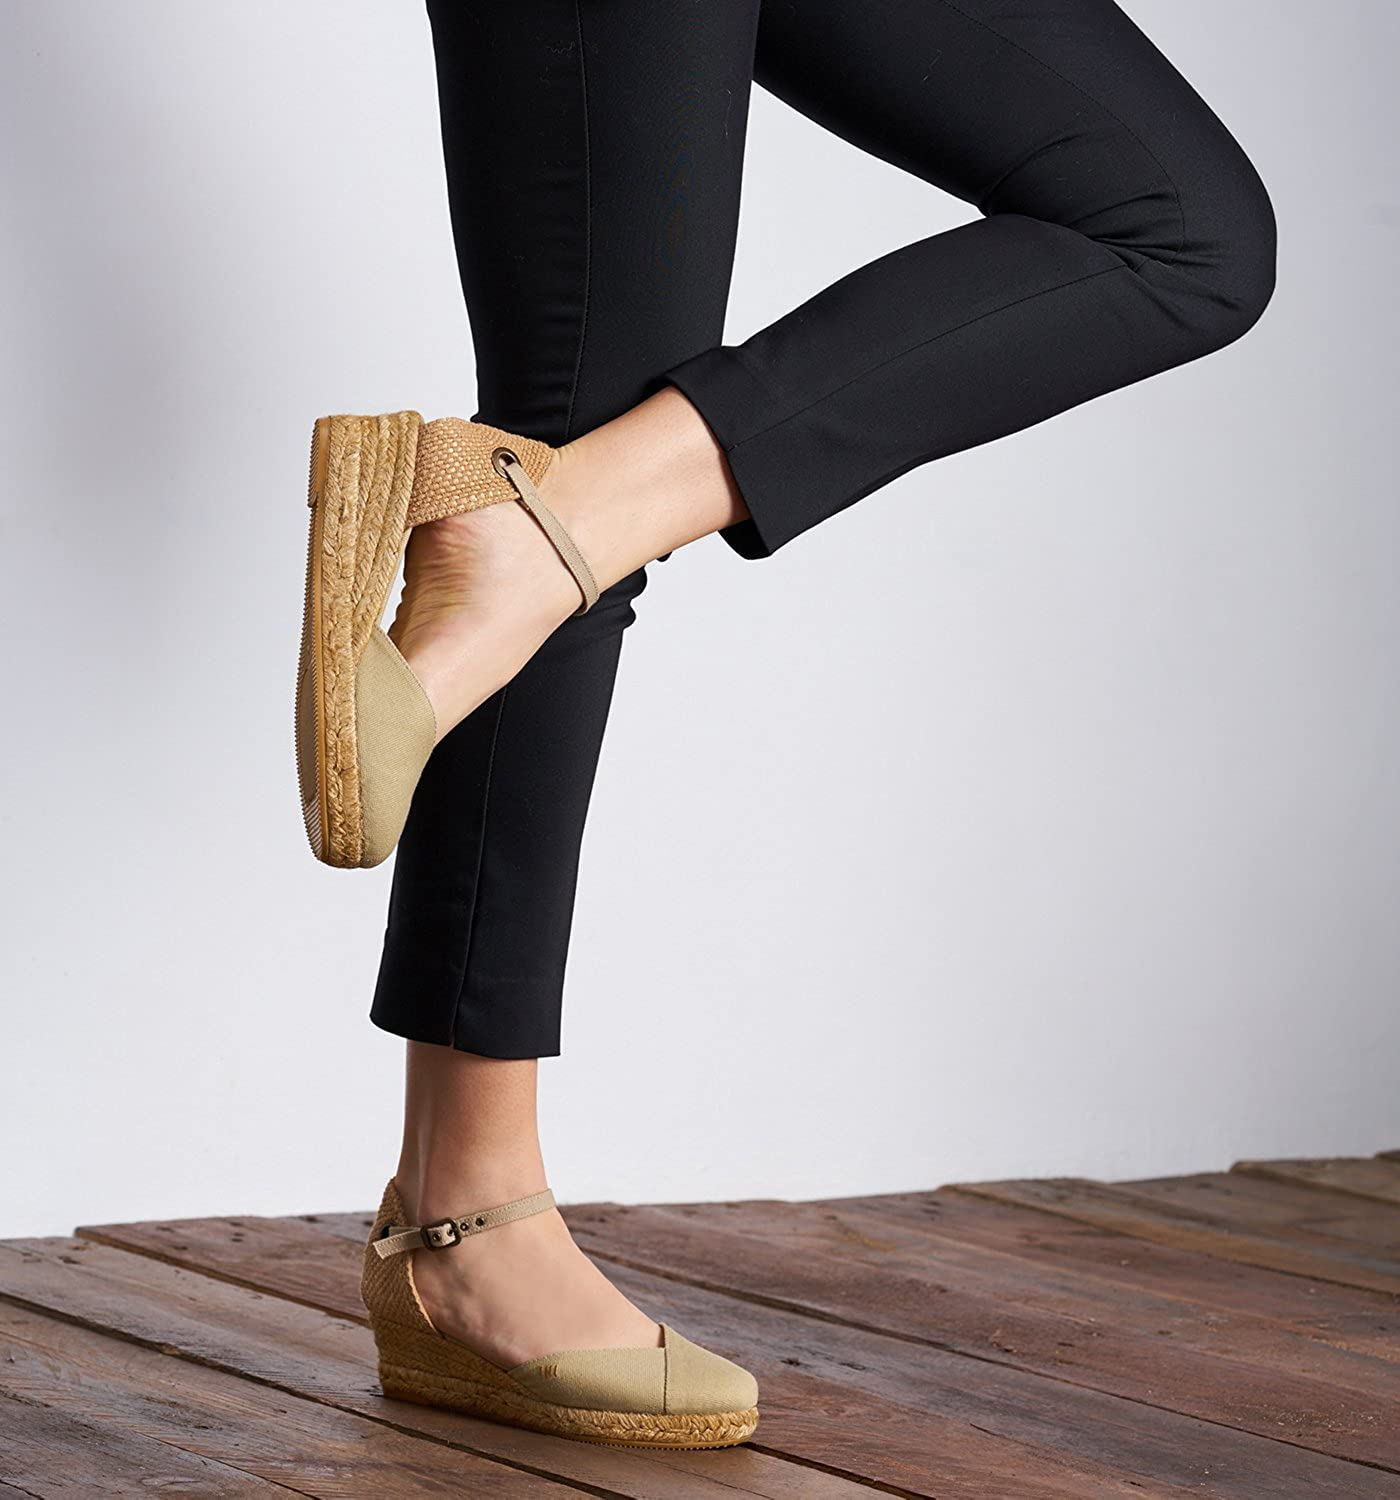 a wedges comforter high quick indecent comfortable shoesquirrel to may tide most you shoes s over heel obsession of one be fashion chronicles the synopsis pair best and they cutest here gallery